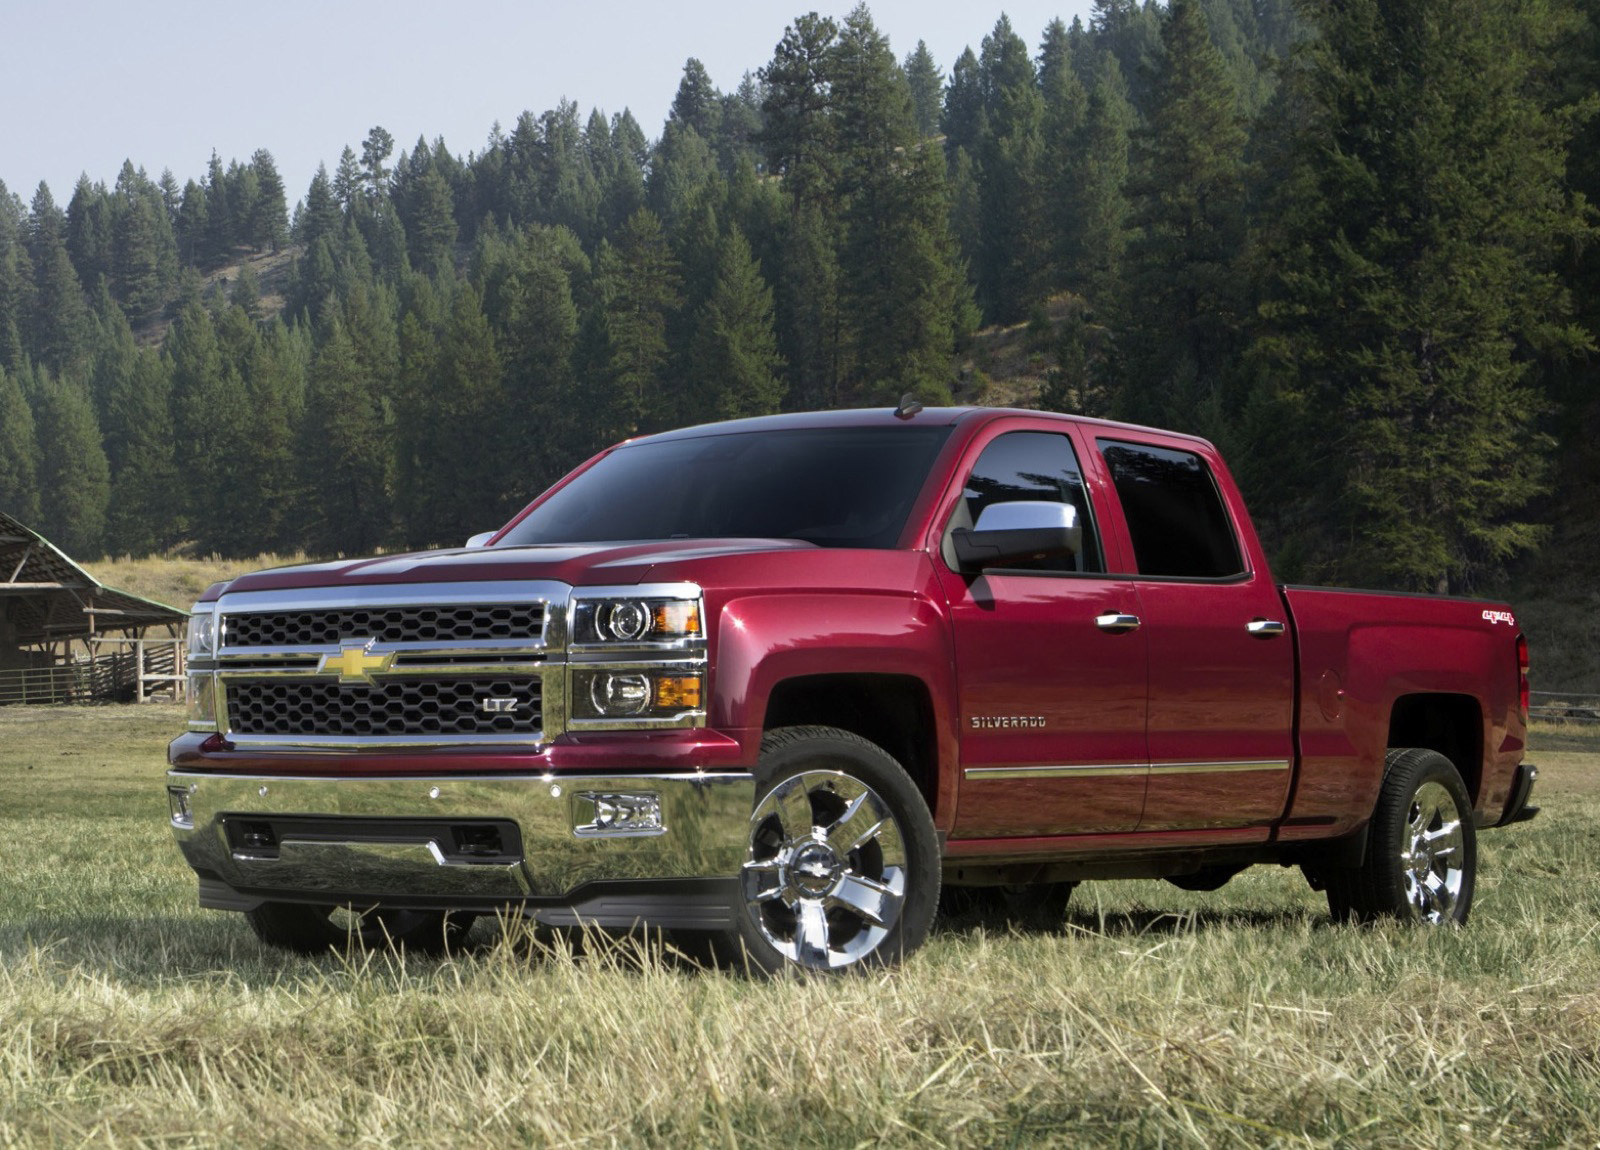 Silverado 2013 chevy silverado recalls : GM Asks NHTSA For Permission To Skip Recall Of 2014 Chevrolet ...